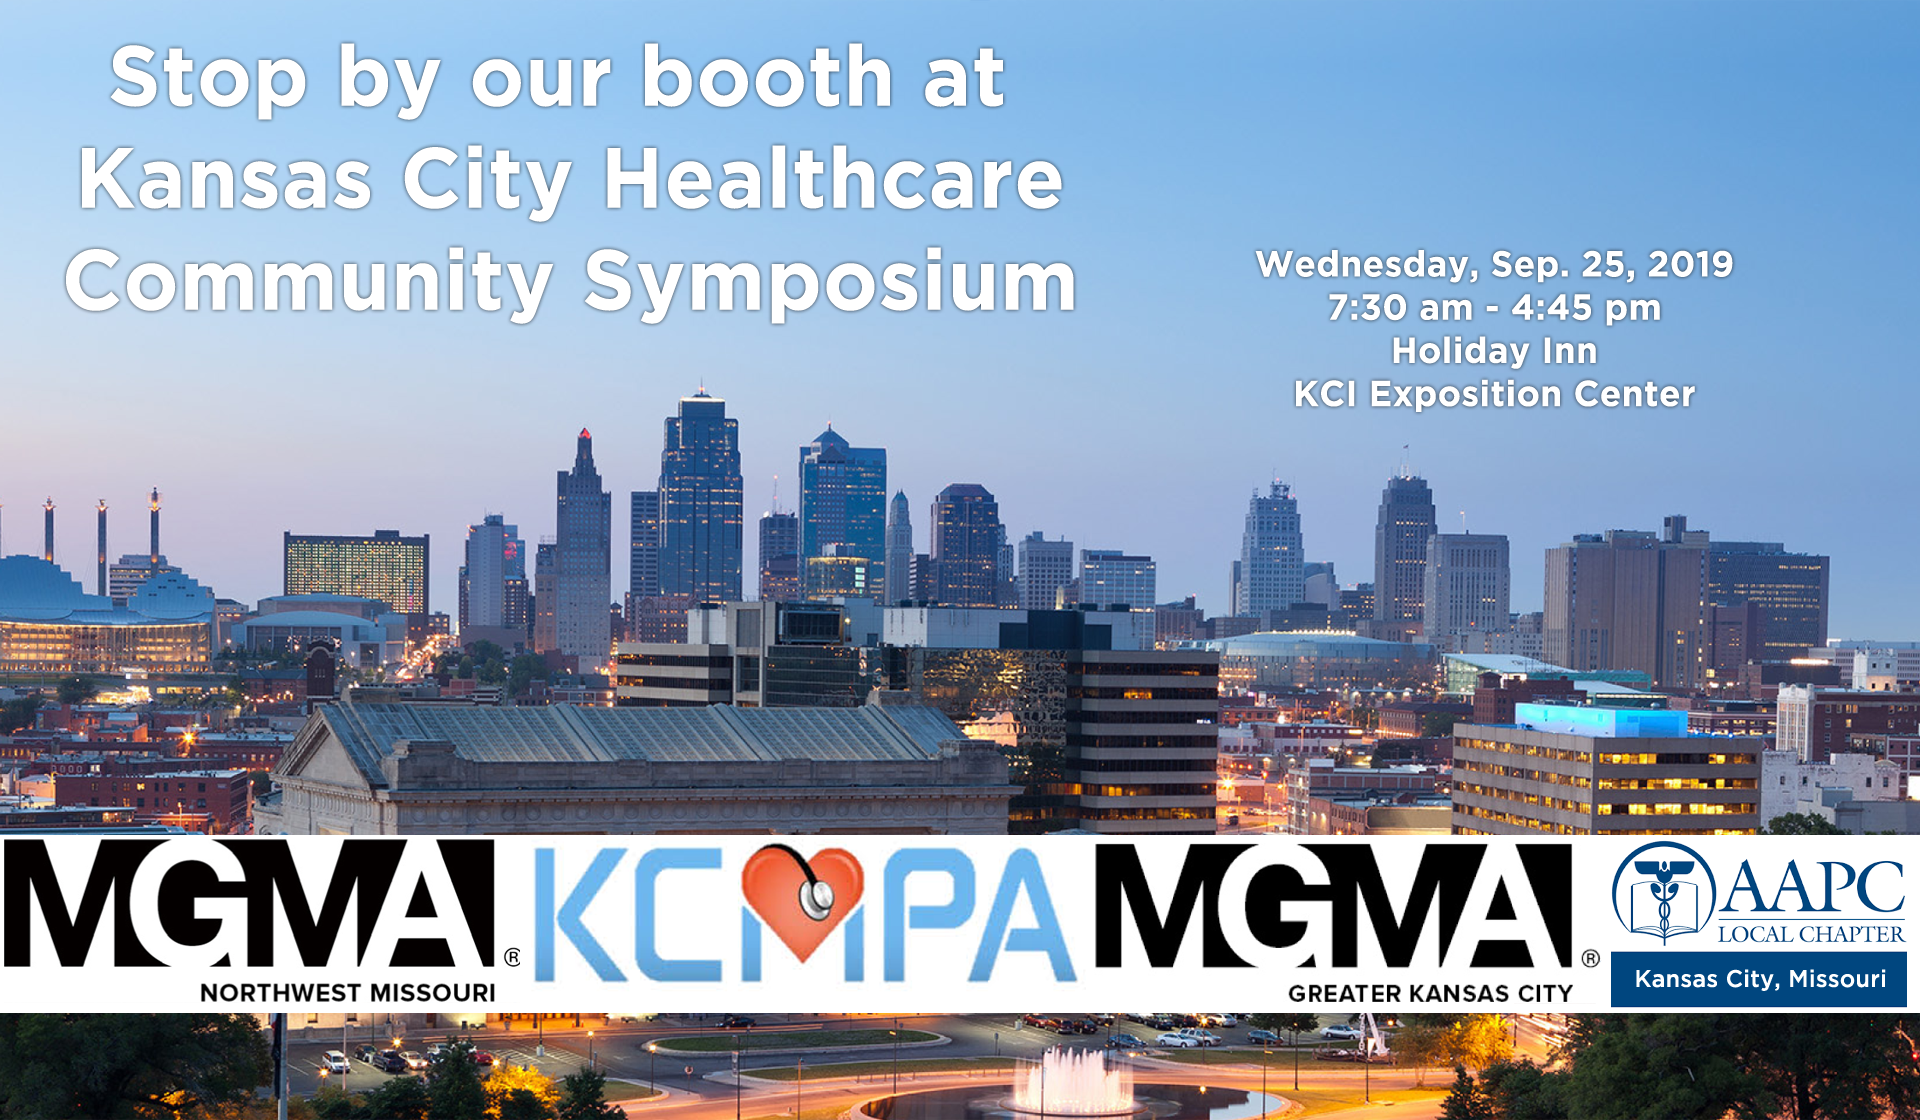 Kansas City Healthcare Community Symposium Wednesday, September 25, 2019